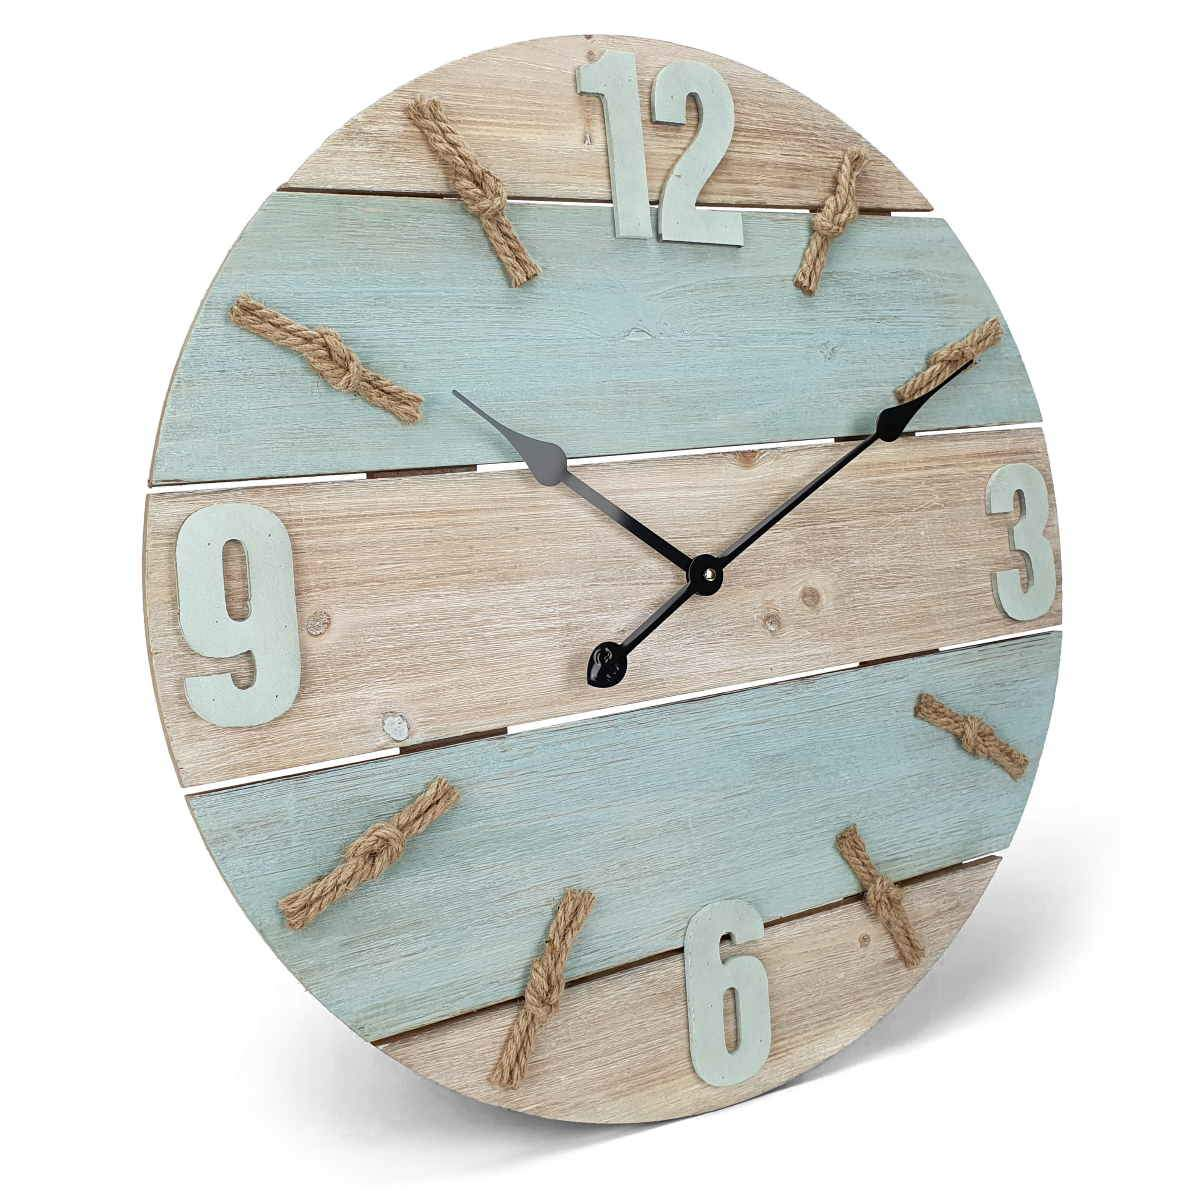 Victory Patterson Shabby Marine Timber Panel Wall Clock 60cm CBA 5177 1